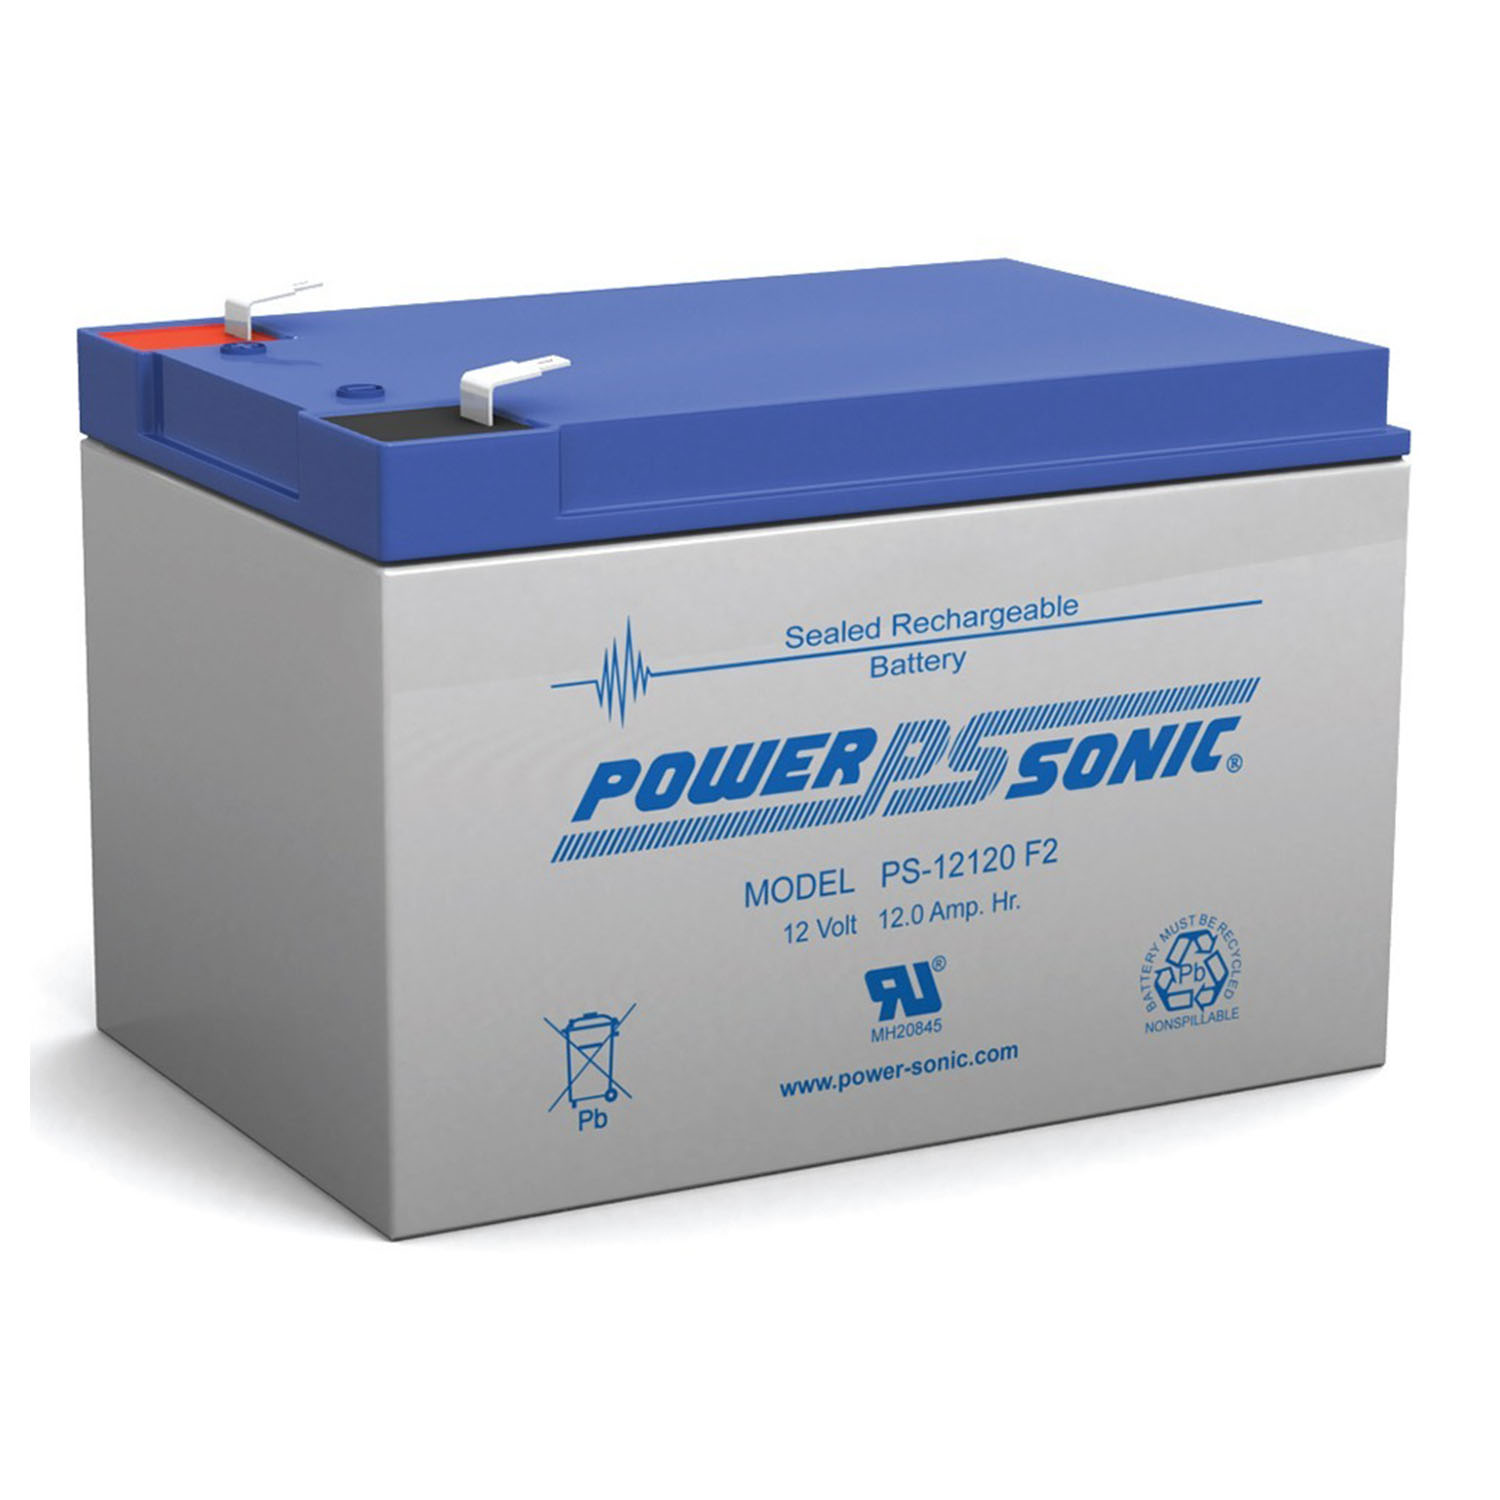 BATTERY REPLACEMENT for POWER-SONIC PS-12120F2 PS-12120 F2,12V 12AH EA.